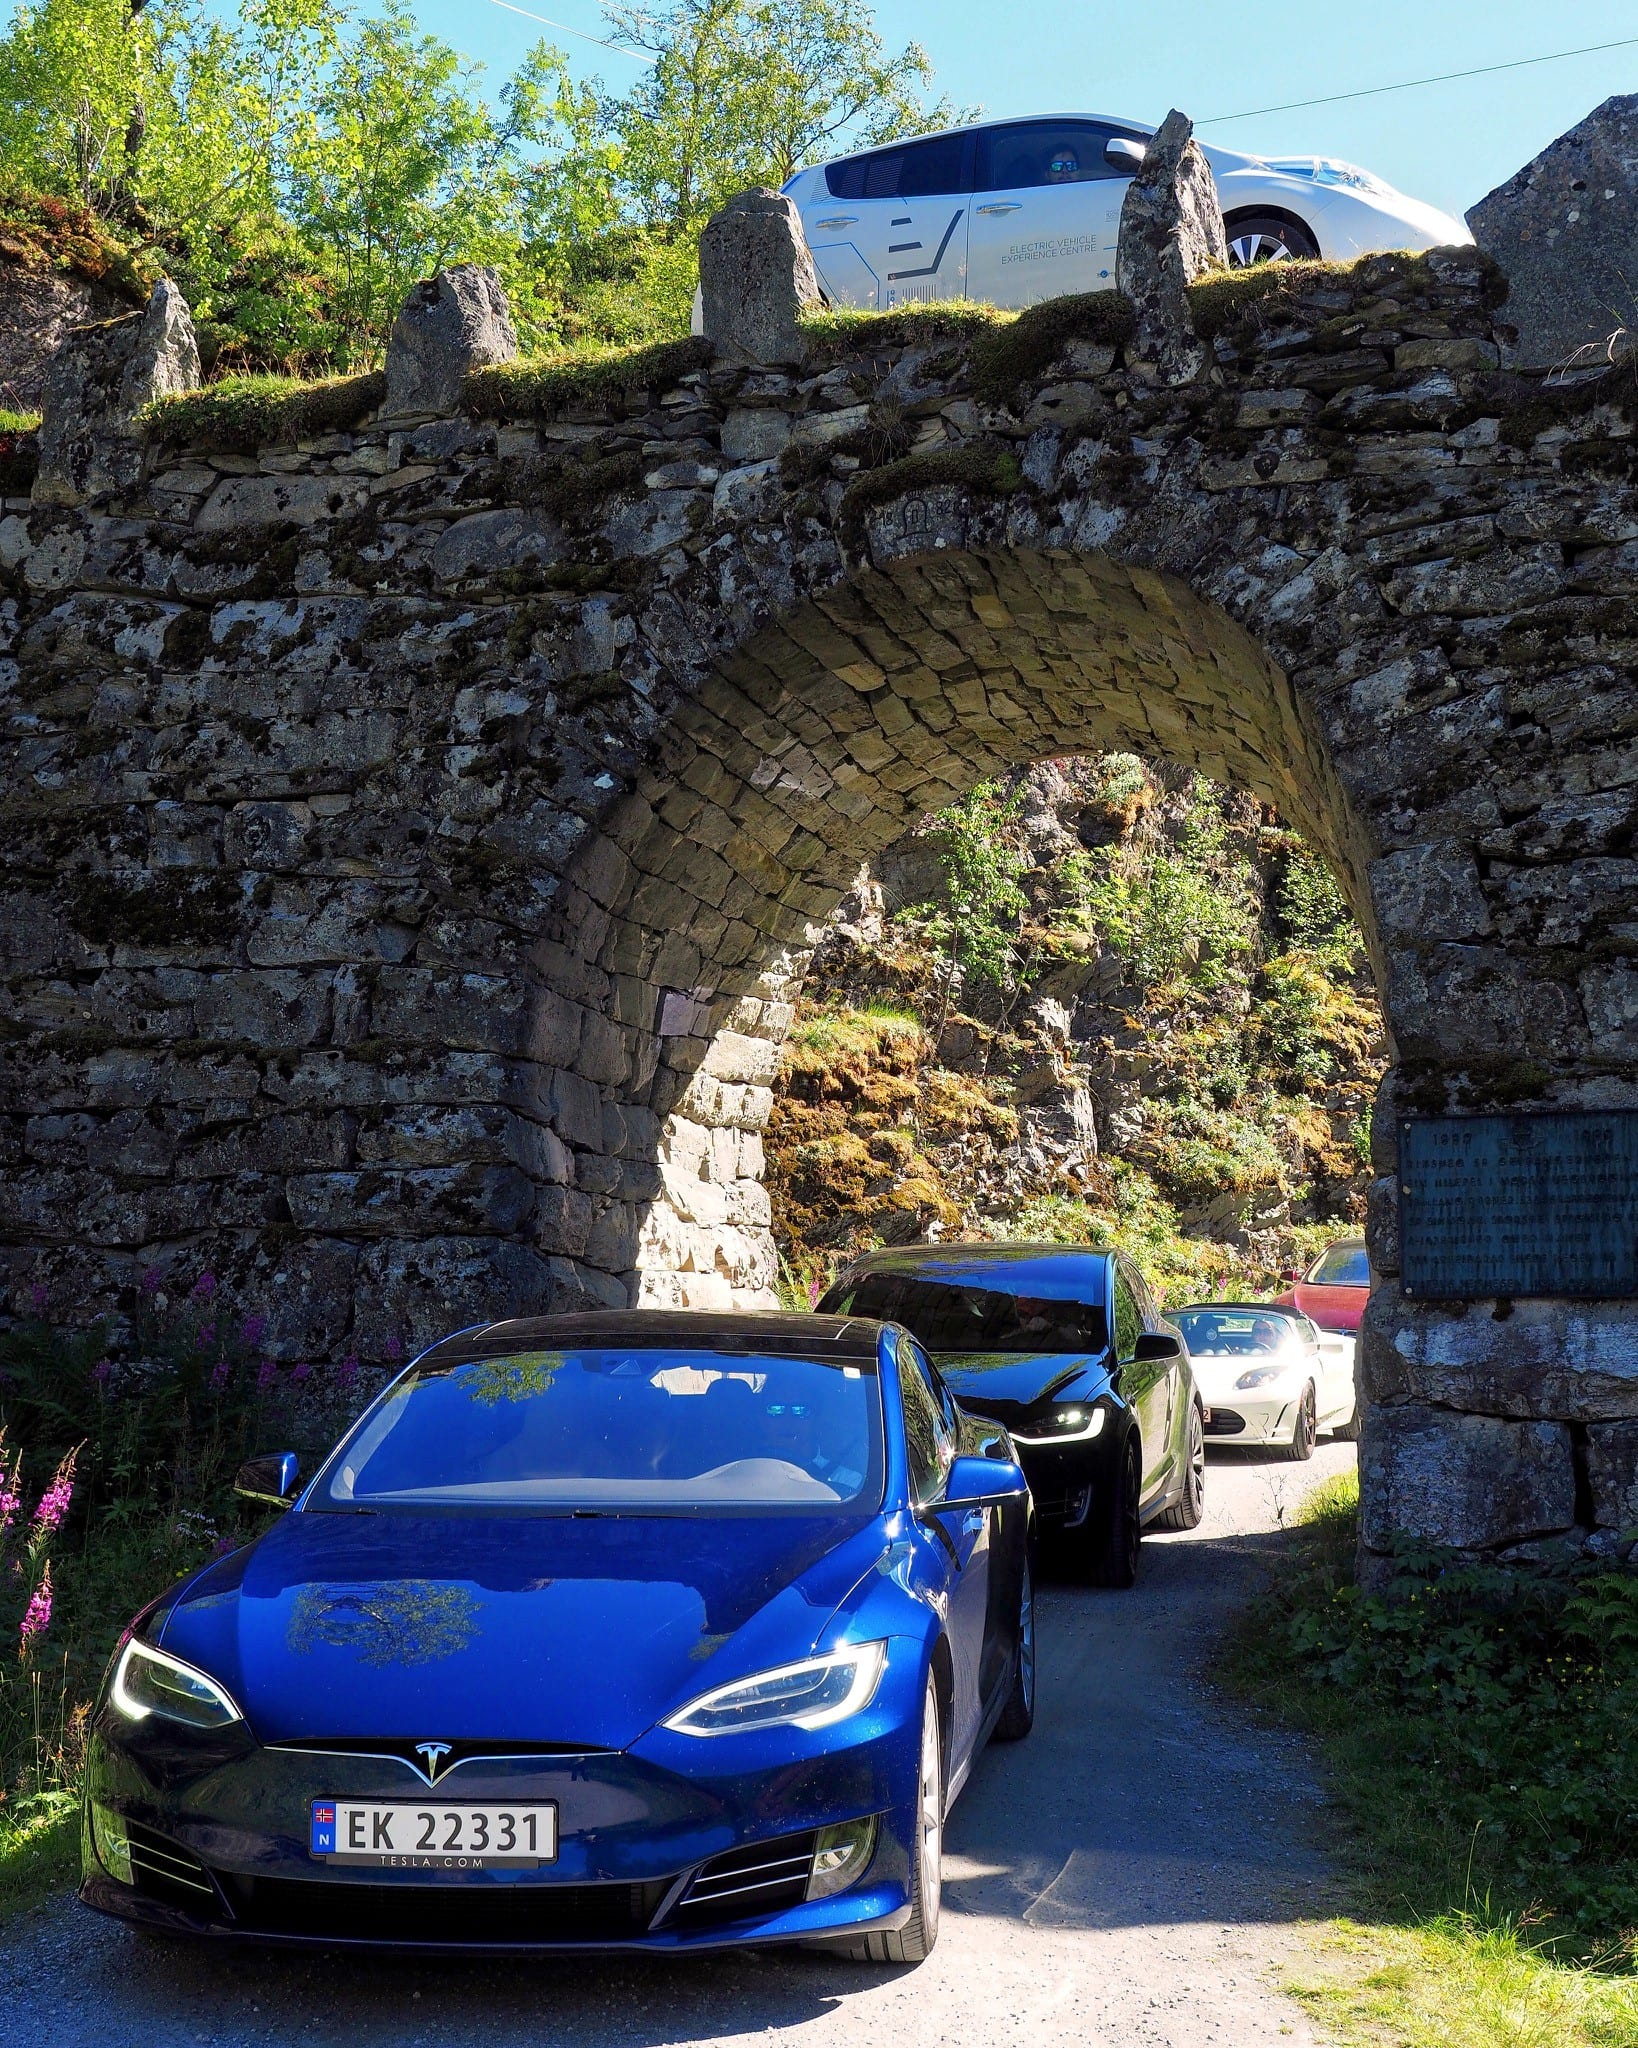 Norway bridge BMW Tesla Nissan summer challenges